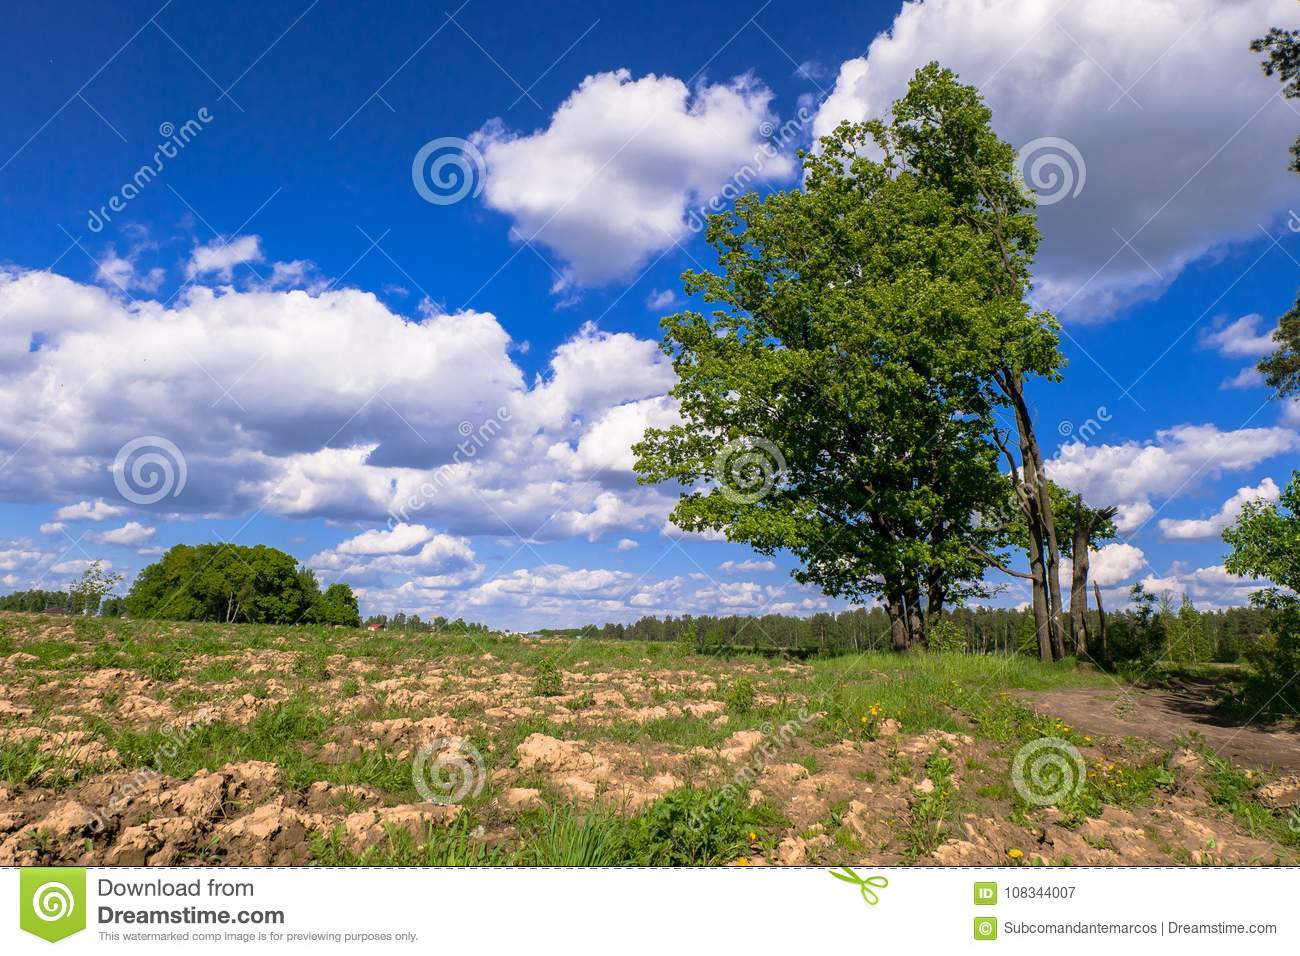 Sunny landscape of the countryside in the beginning of summer.